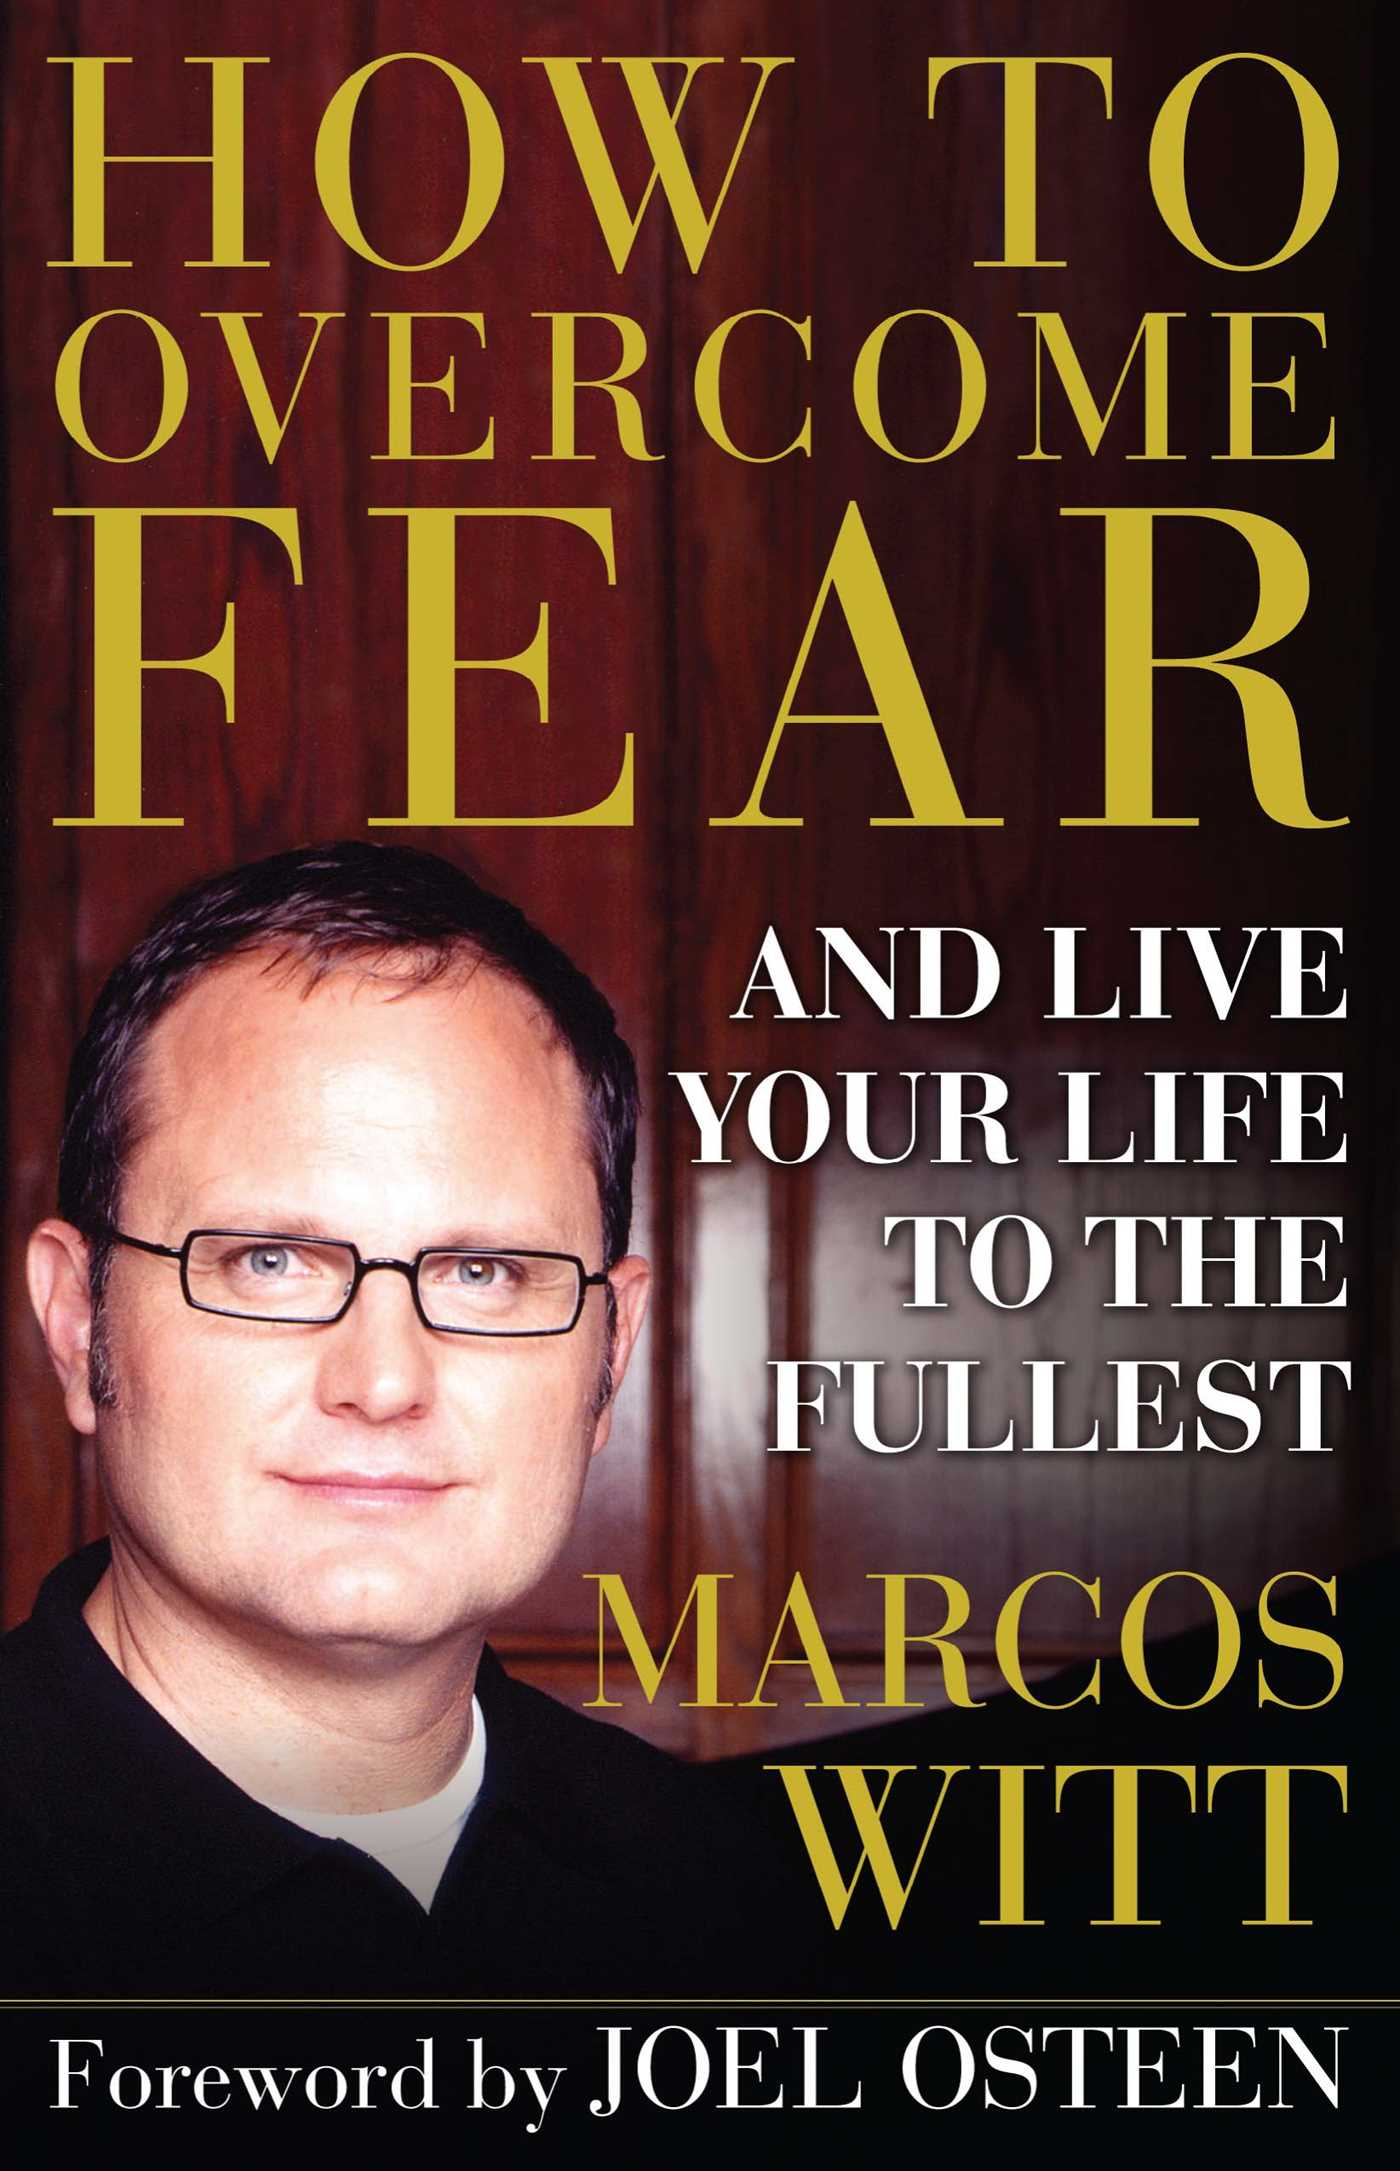 How to overcome fear 9780743290845 hr